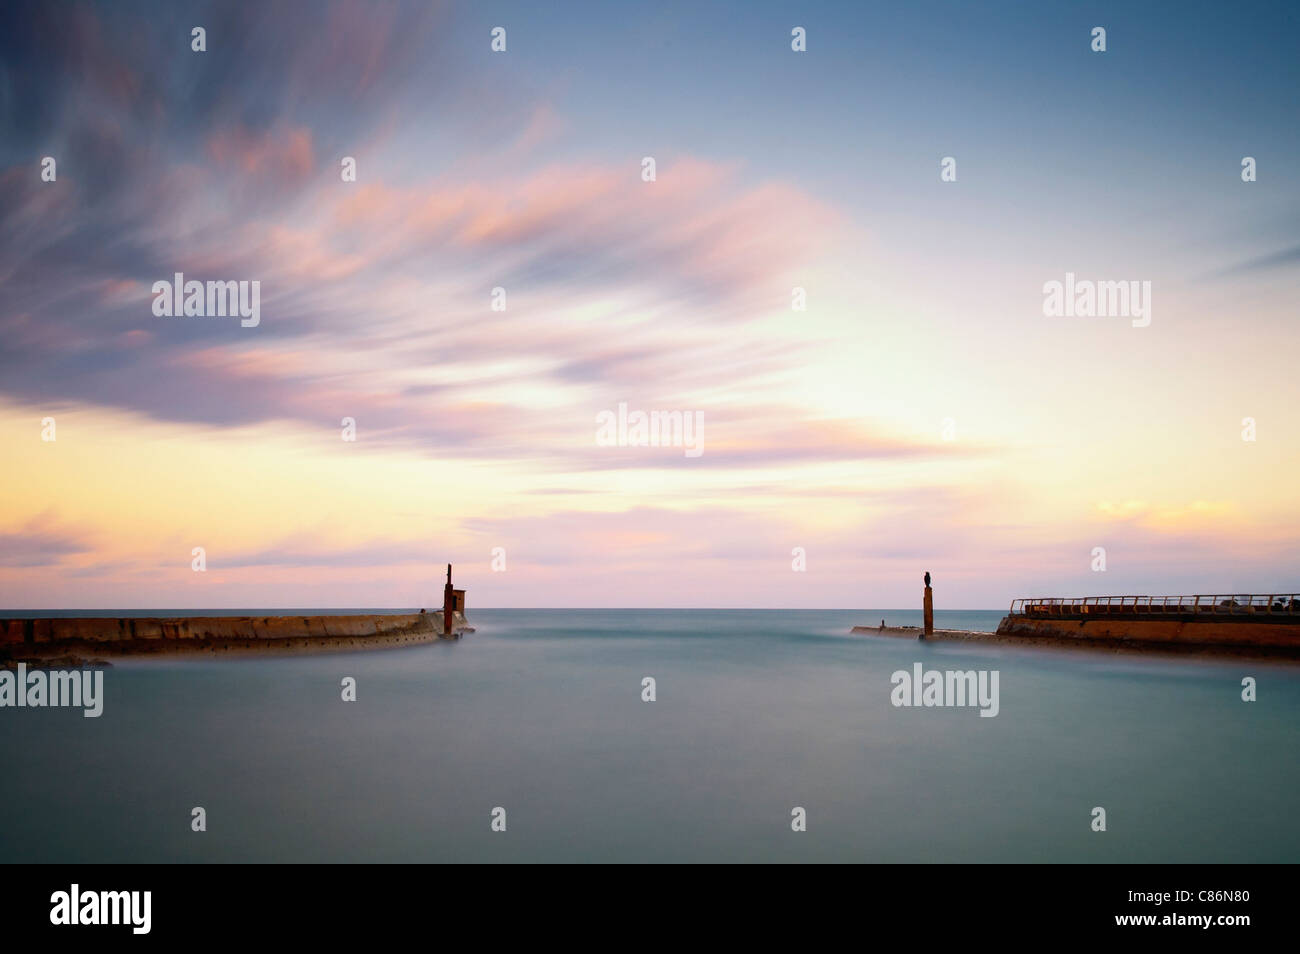 Long exposure of the sunrise over deserted harbor - Stock Image